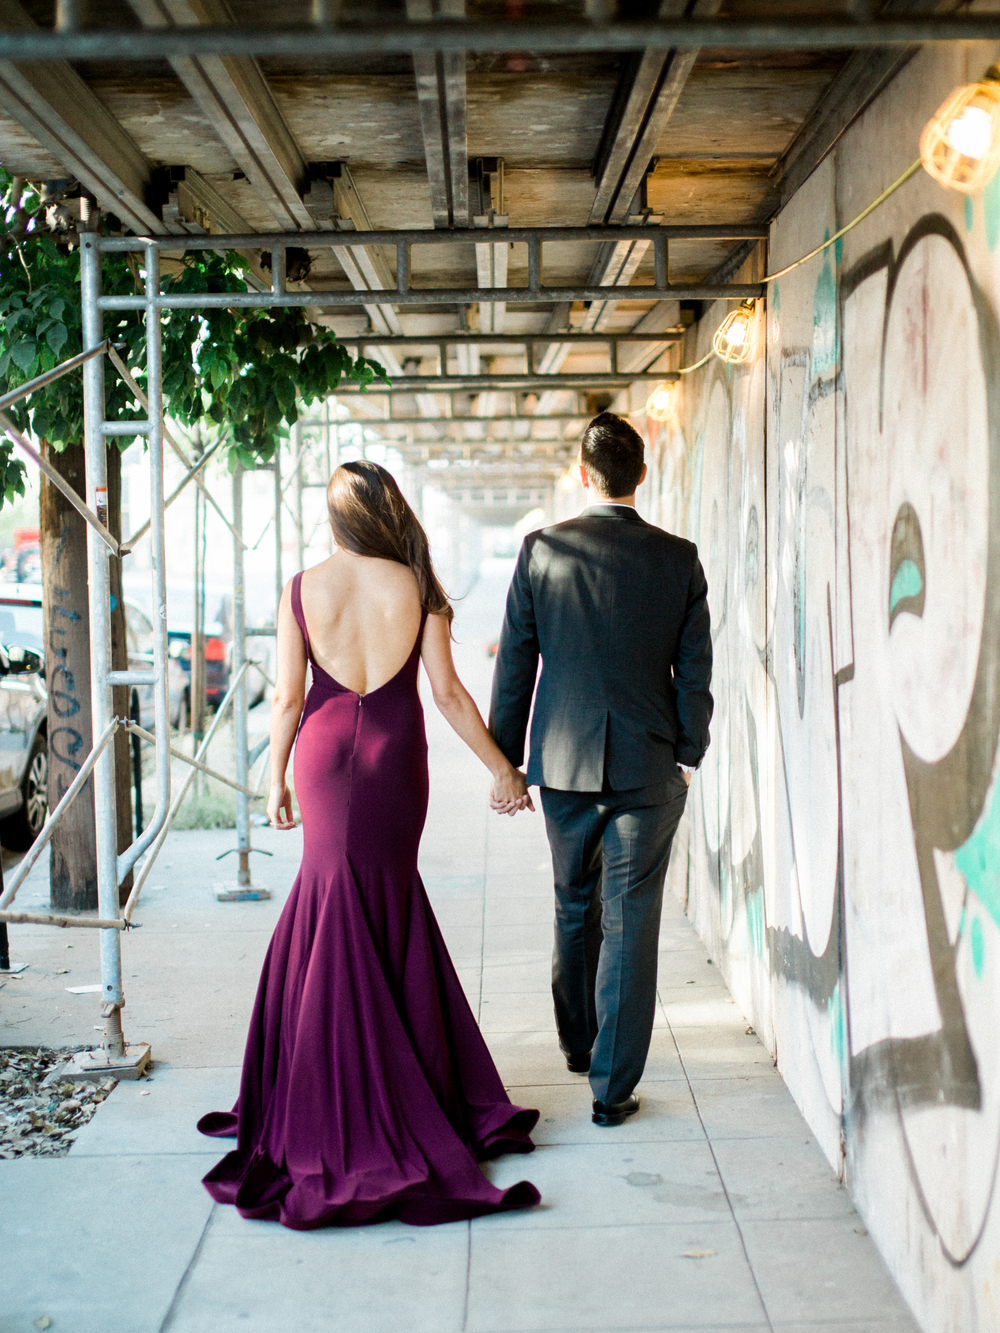 downtown_losangeles_engagement_photos_chantepaul-61.jpg